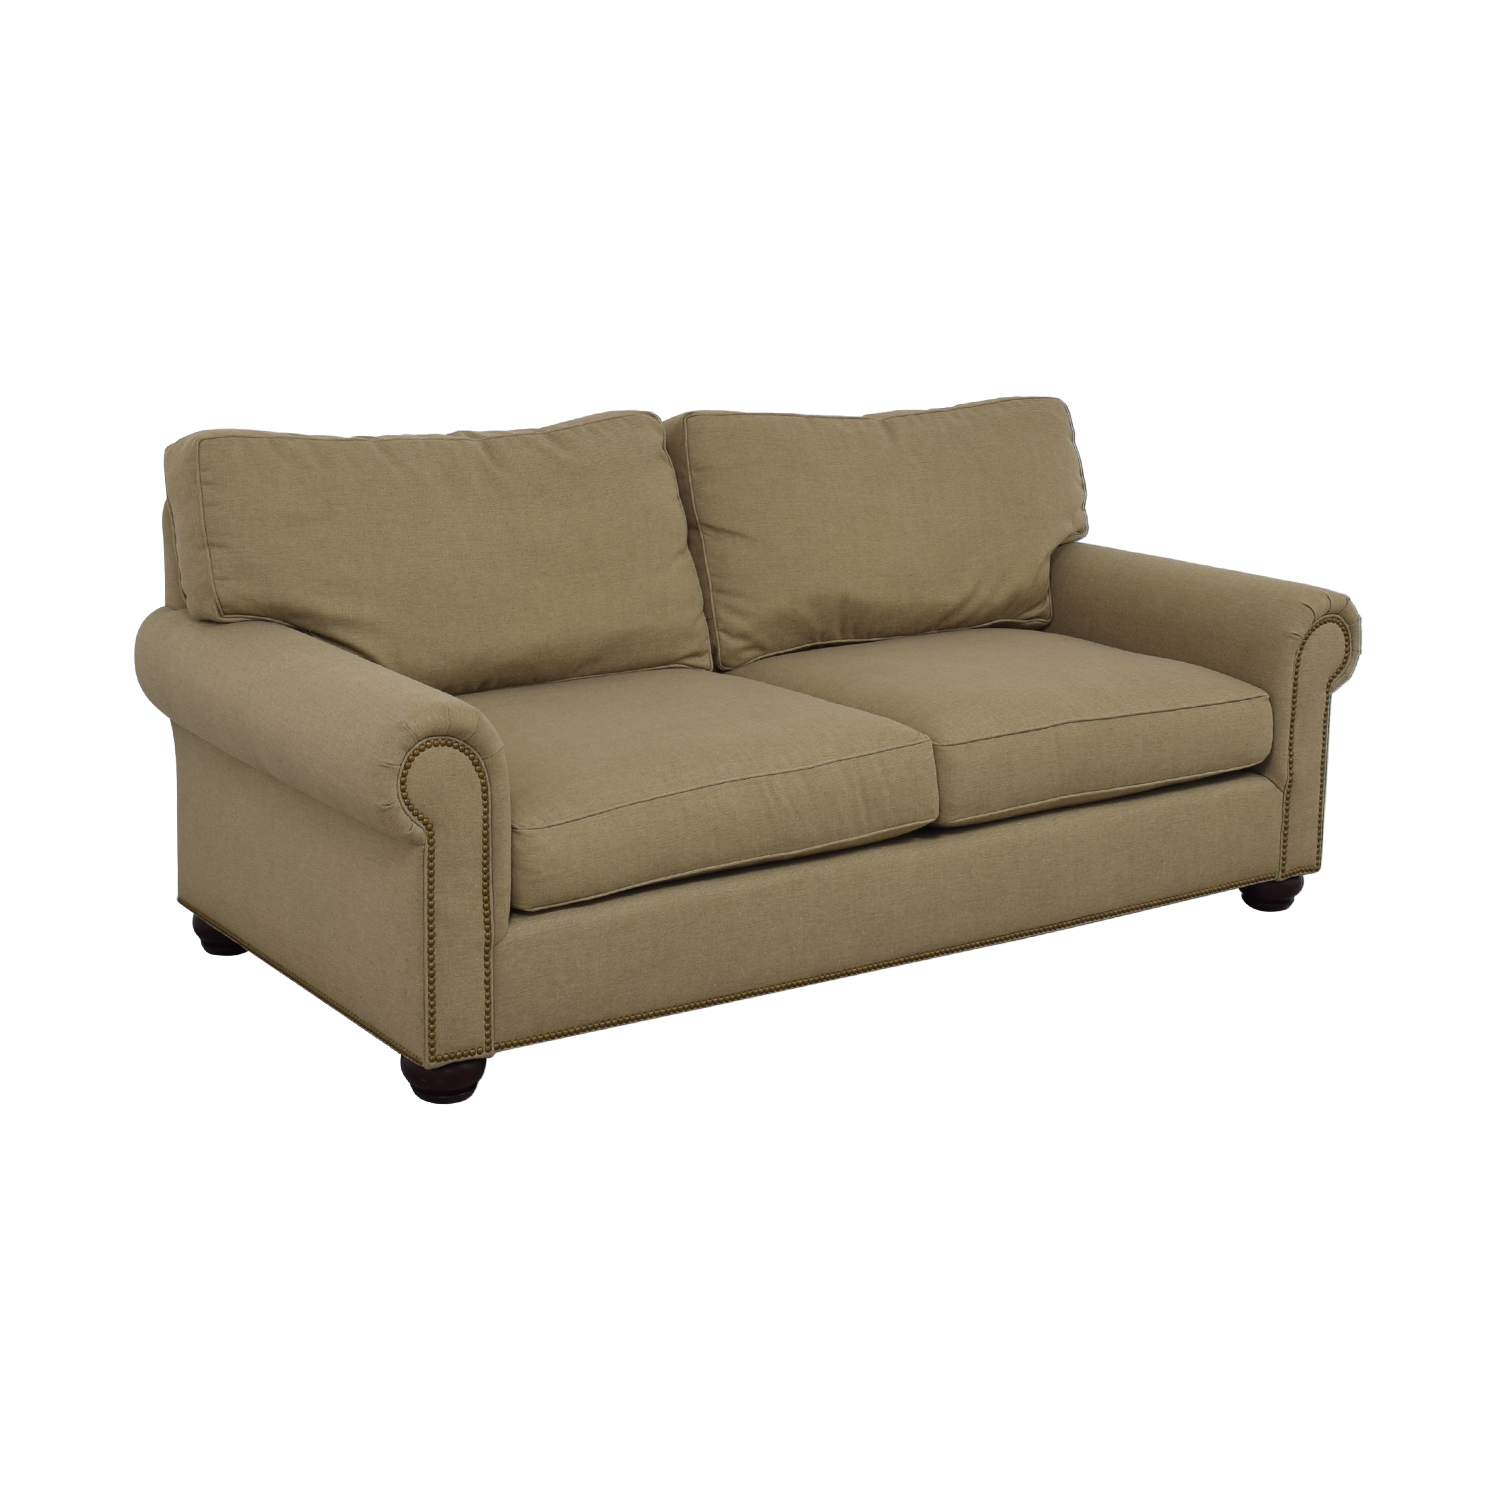 buy Pottery Barn Pottery Barn Webster Beige Two-Cushion Couch online